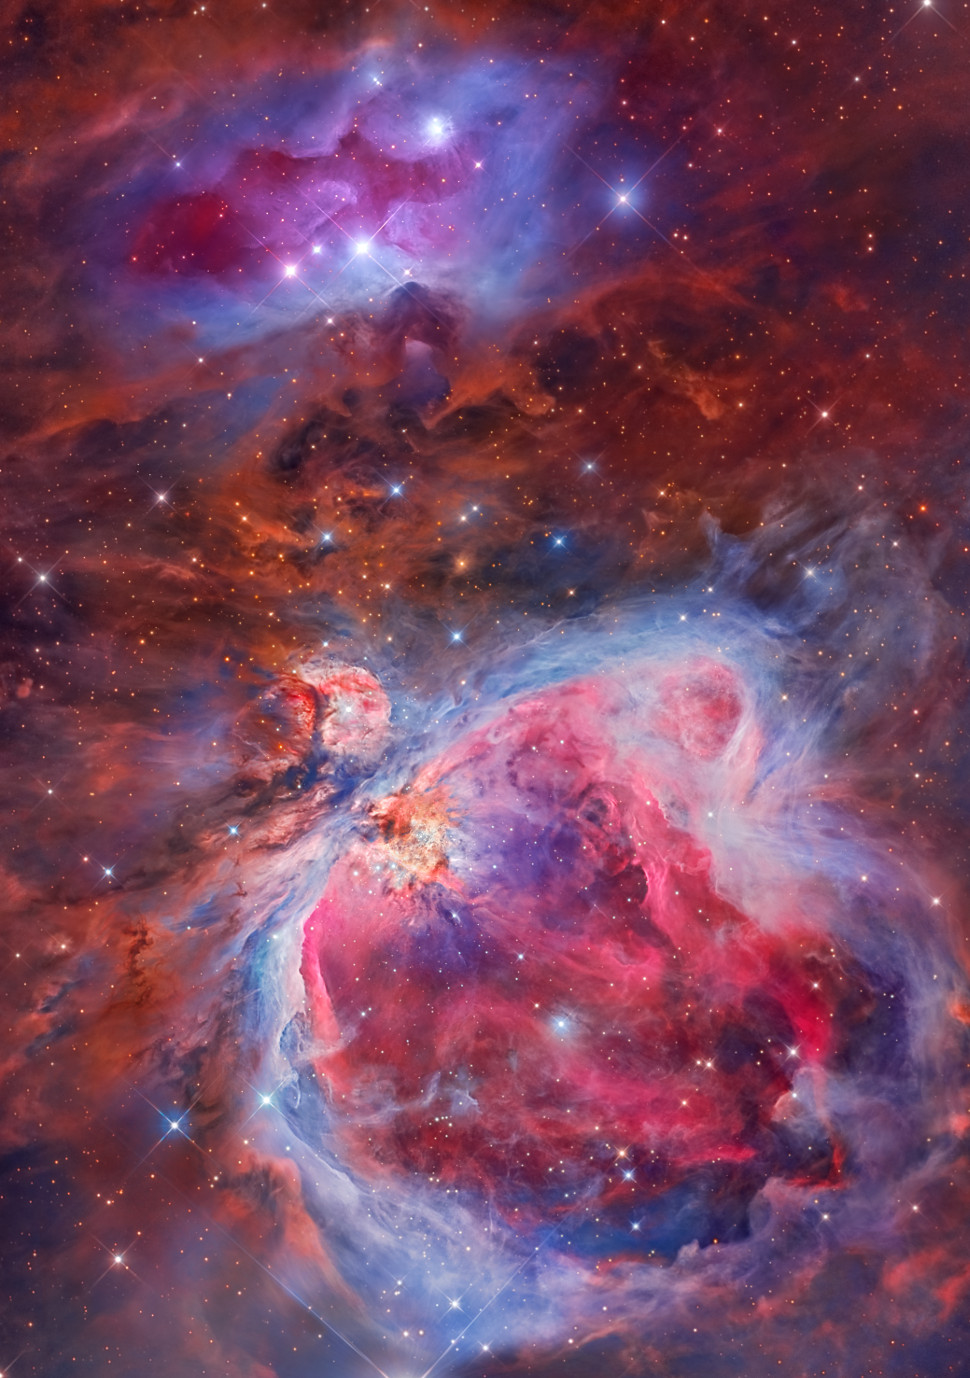 The Orion Nebula (also known as Messier 42, M42, or NGC 1976) is a diffuse nebula situated in the Milky Way, south of Orion's Belt in the constellation of Orion. Located 1,270 light-years away, it's one of the brightest nebulae (a star-forming region) in the night sky, and is visible with the naked eye on a clear night.